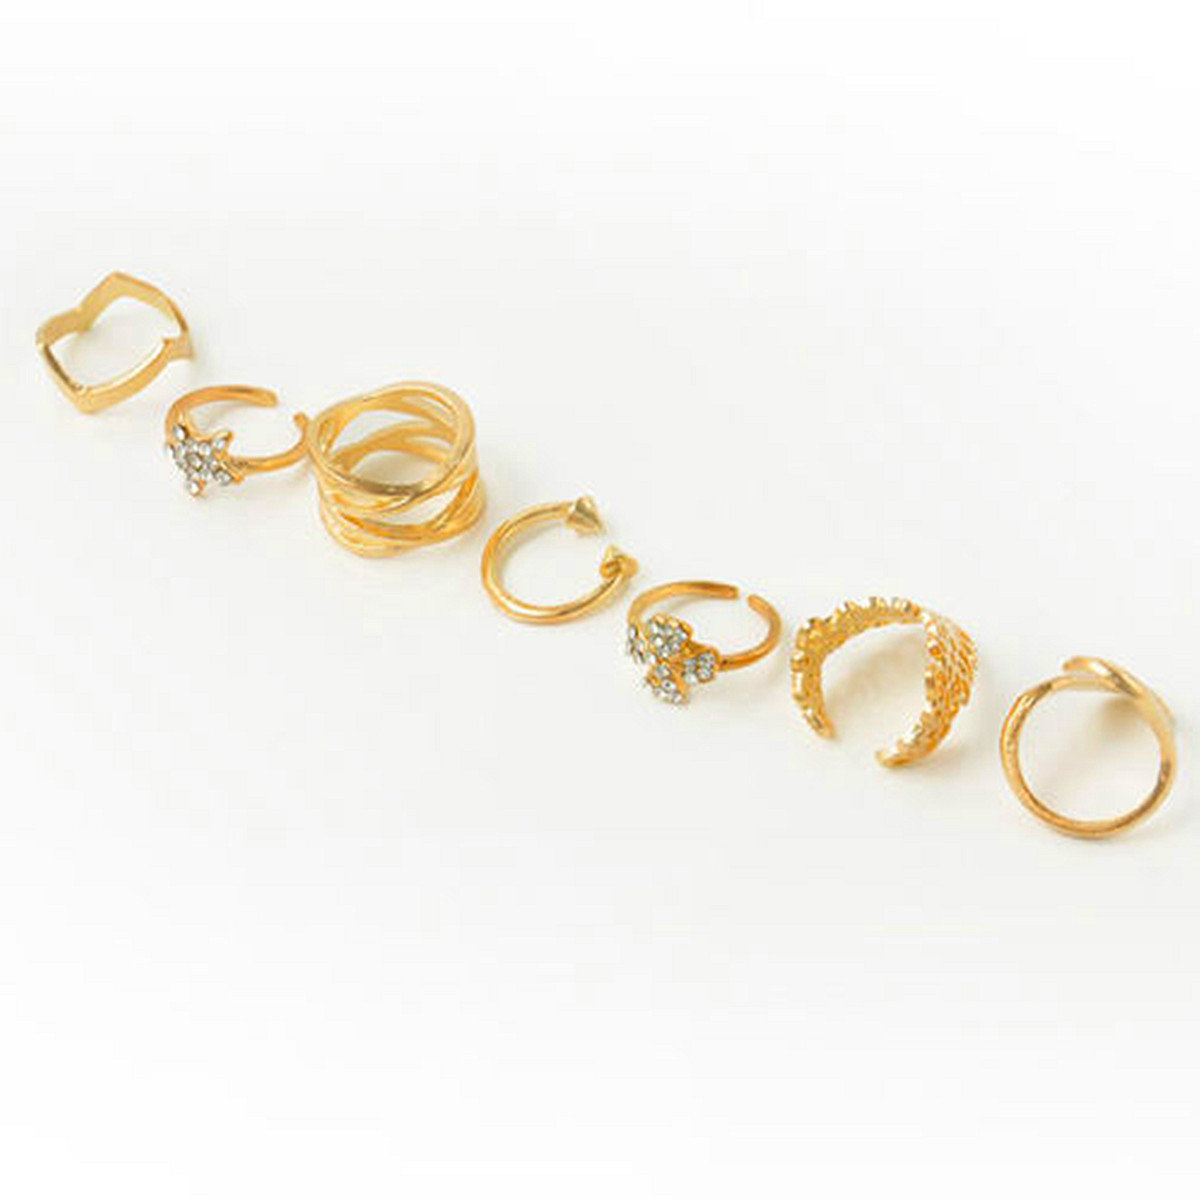 7 pcs Crystal Hollow Knuckle Stacking Unique Rings